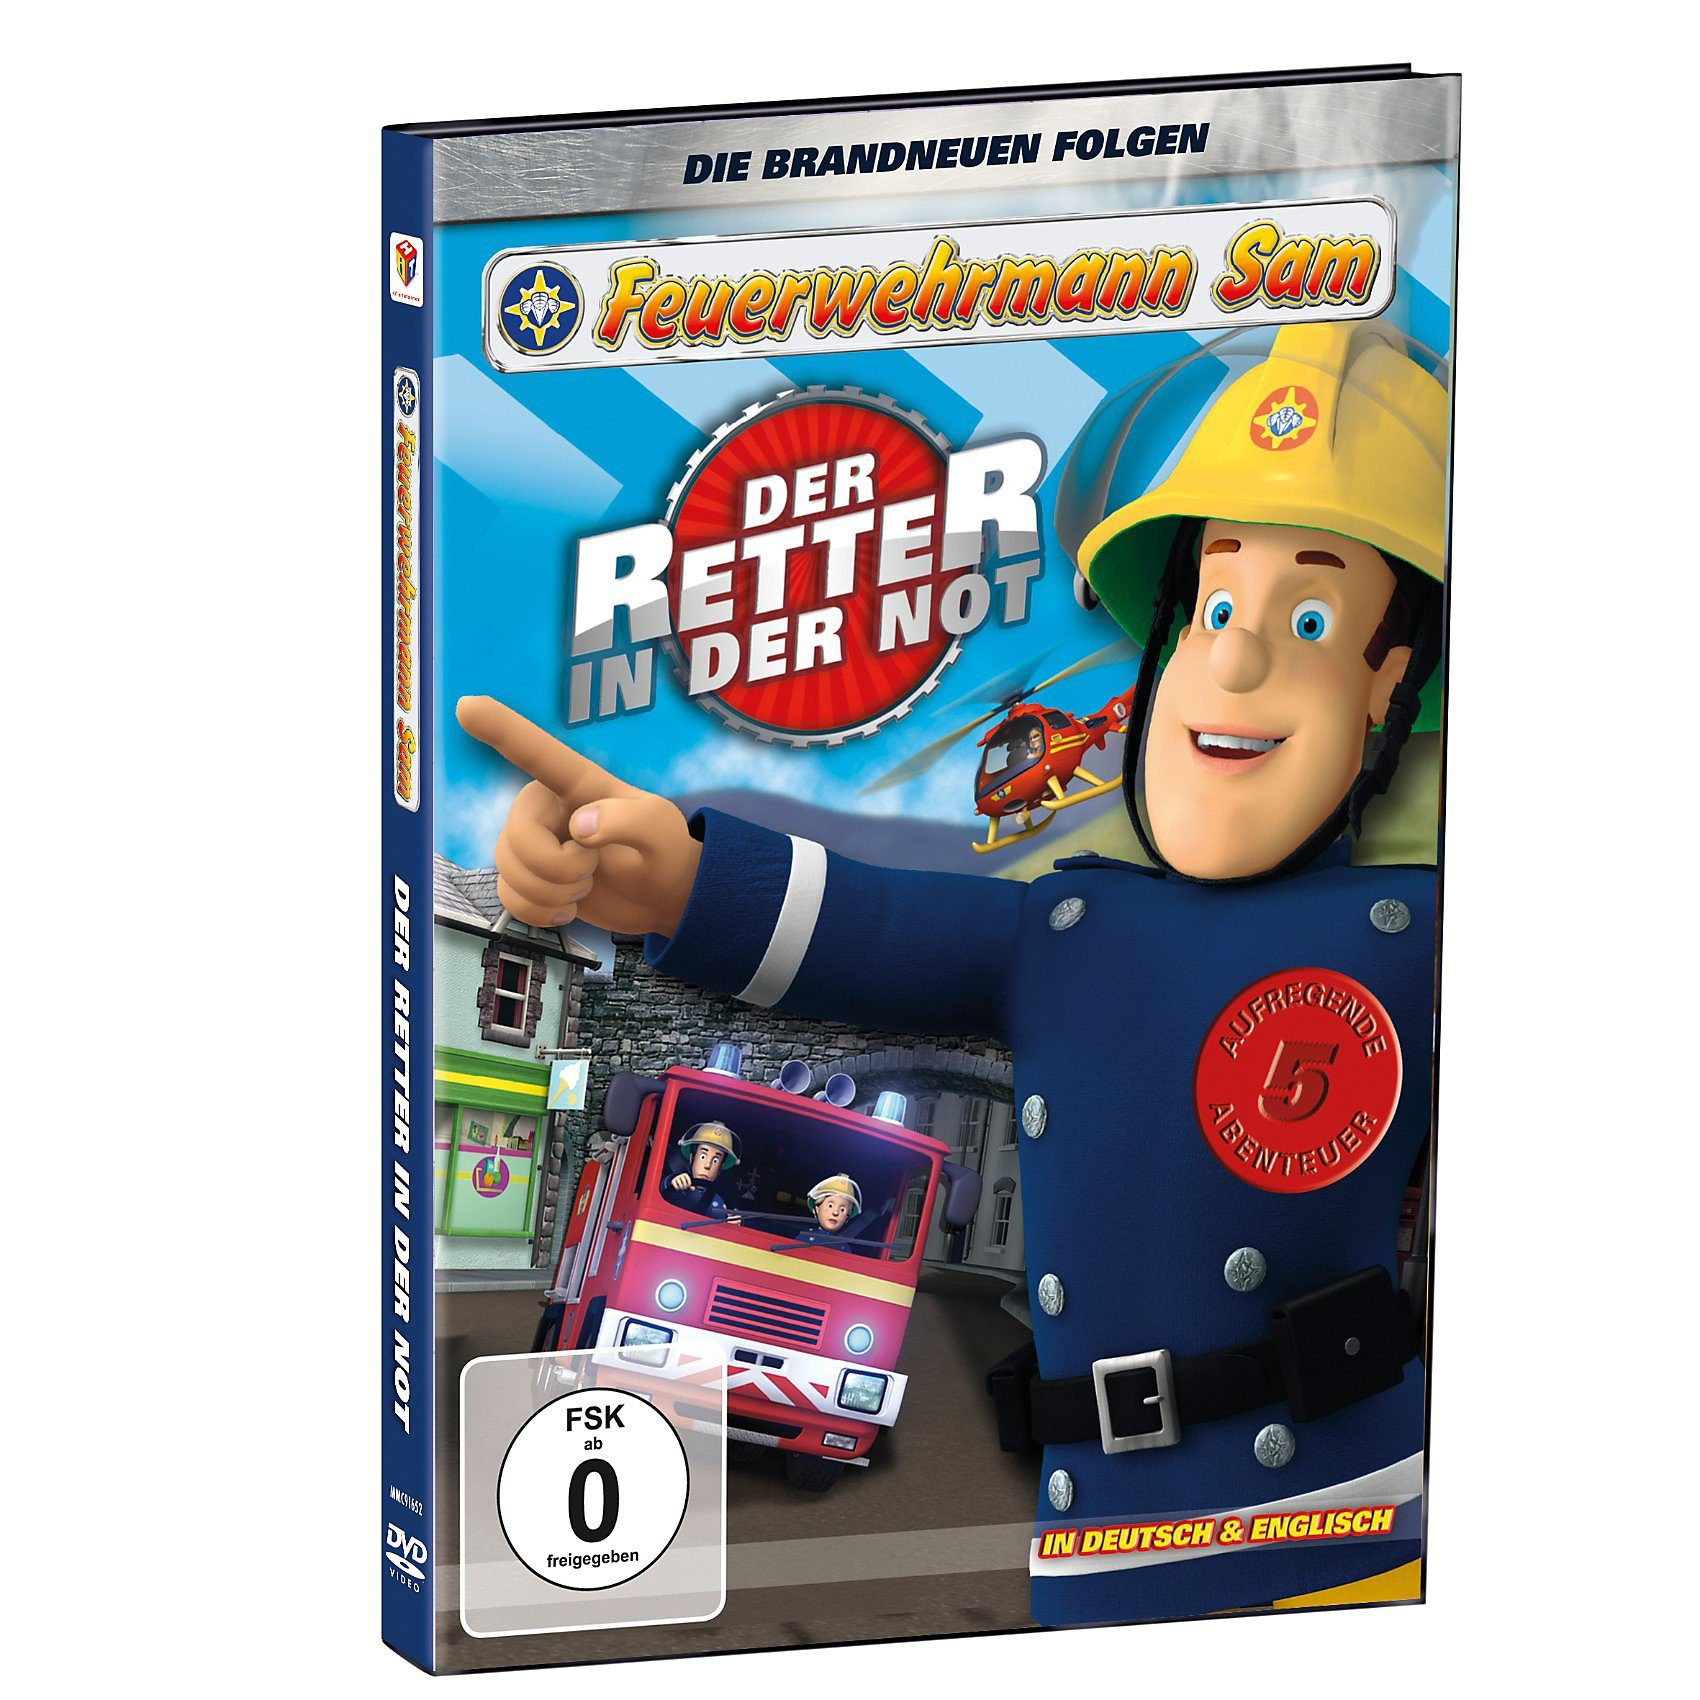 Just Bridge Entertainment DVD Feuerwehrmann Sam - Der Retter in der Not